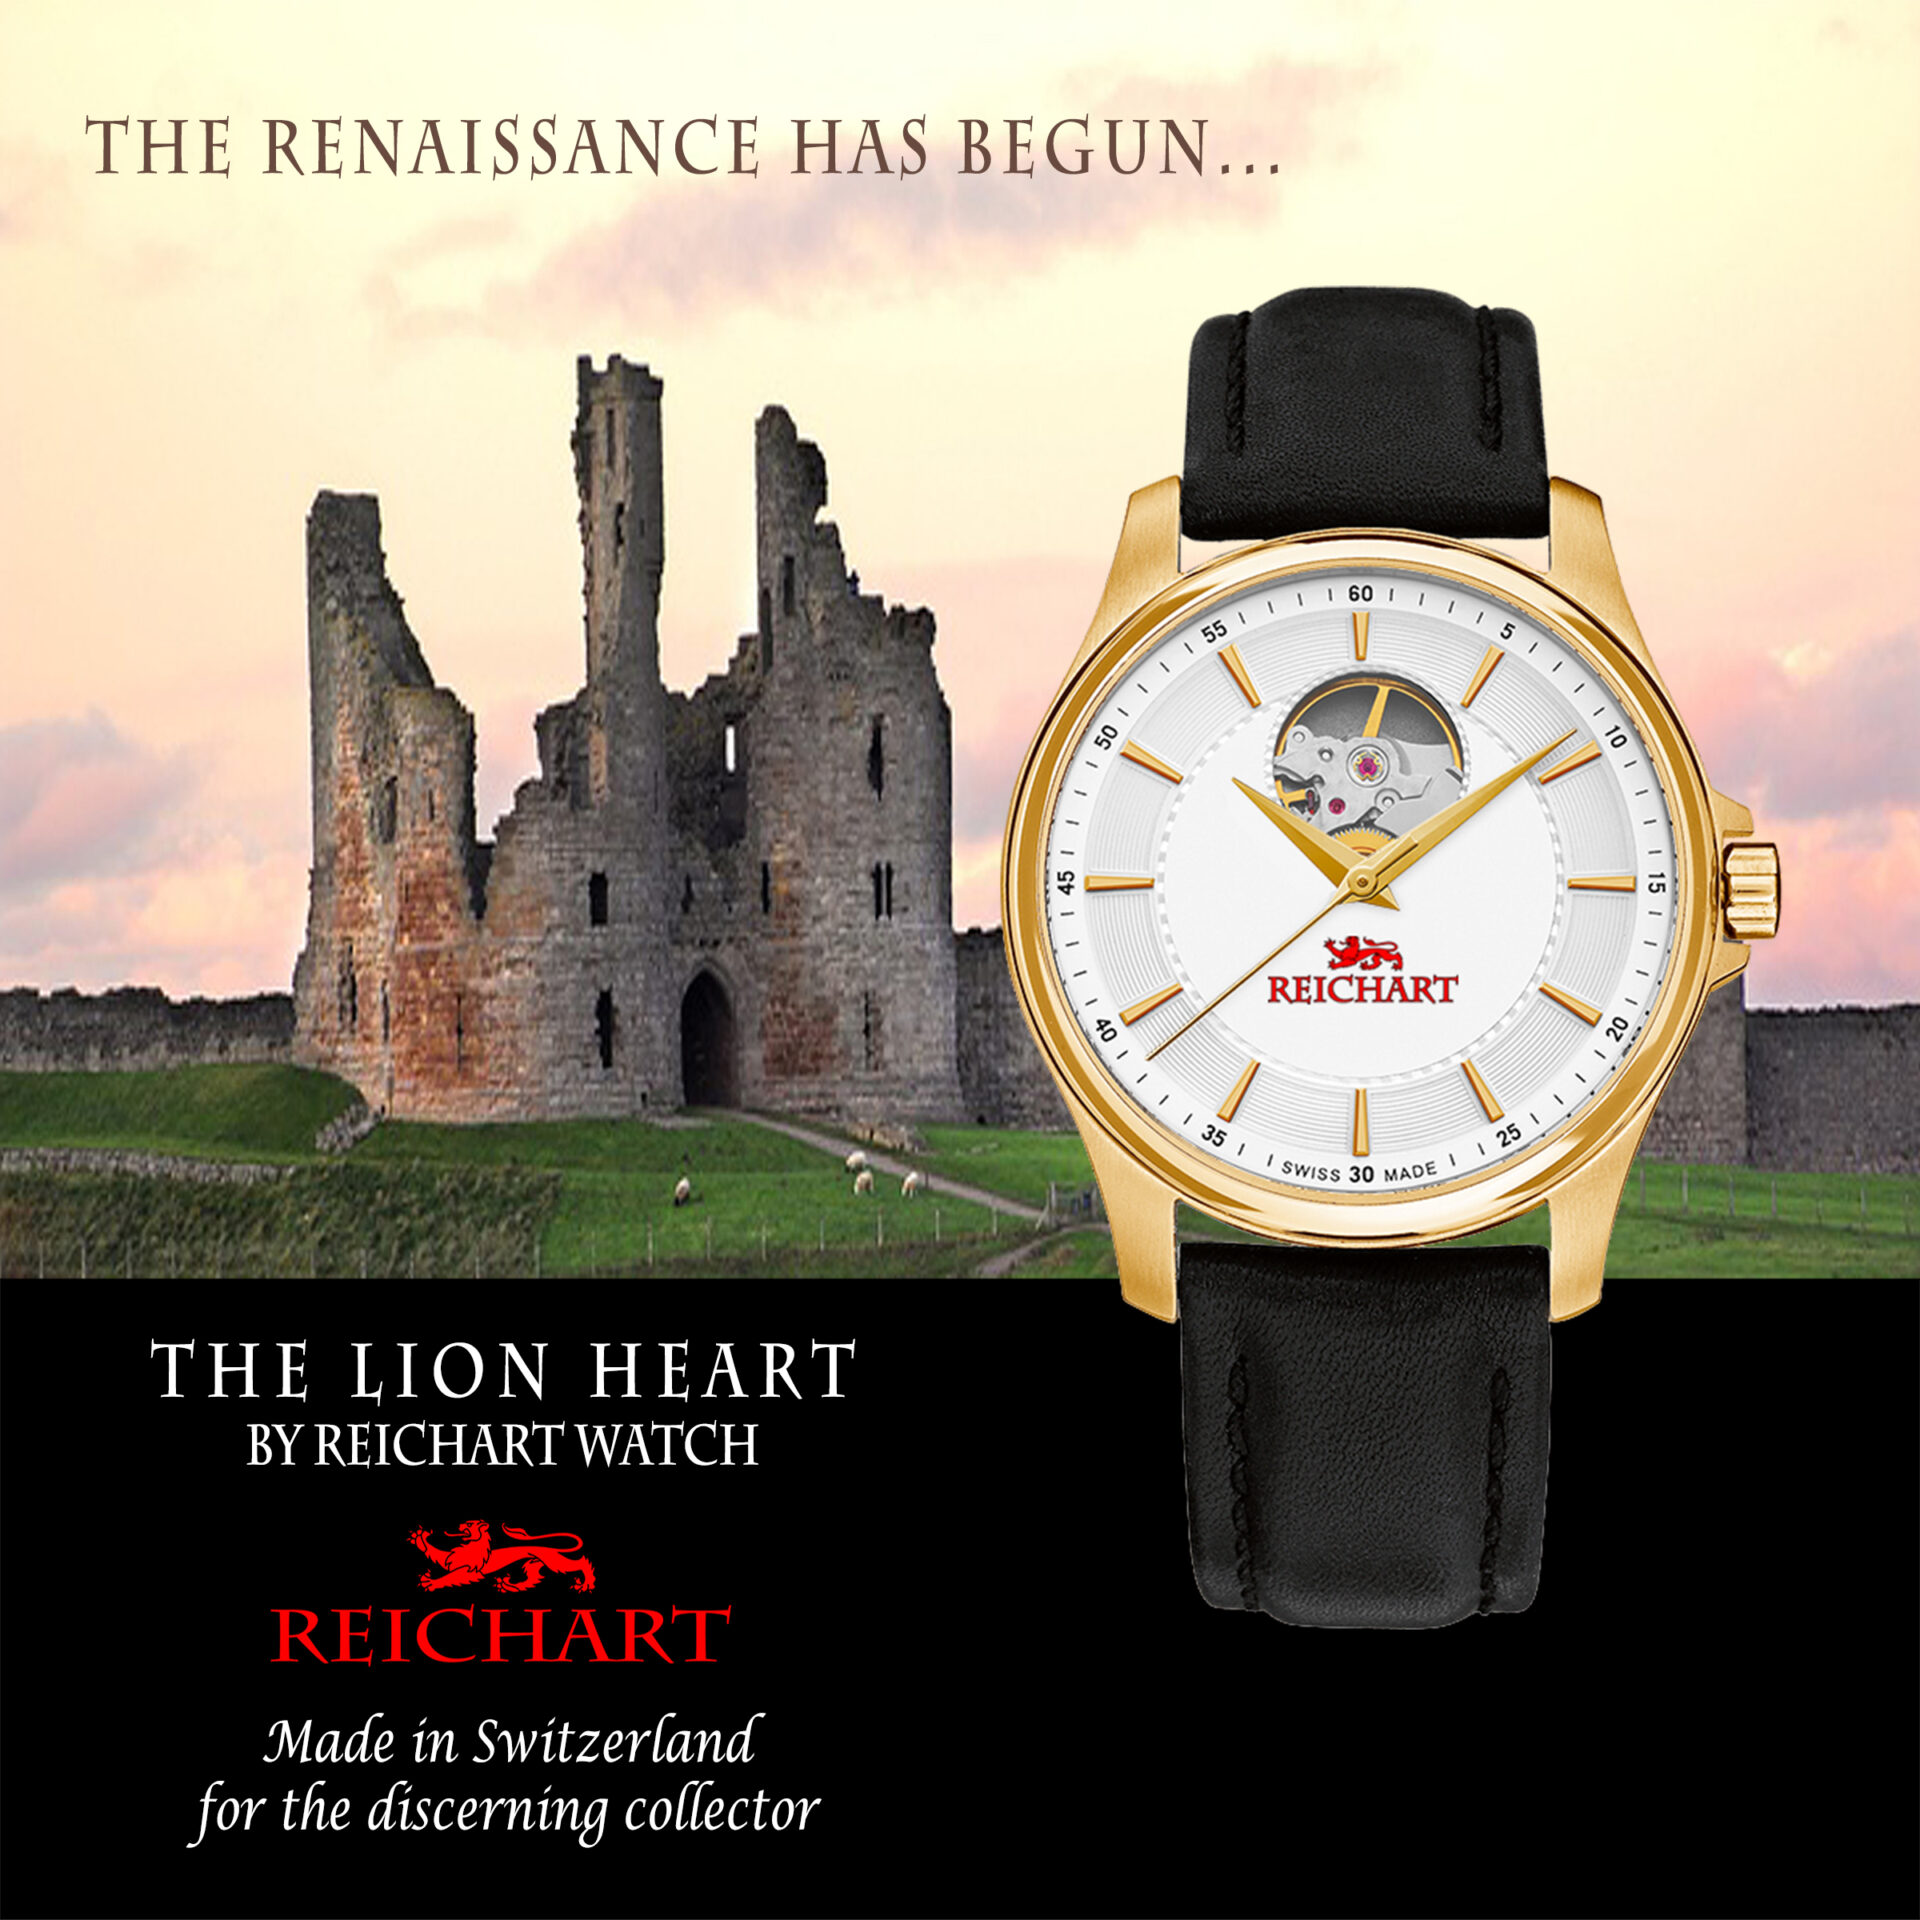 The Lion Heart by Reichart Watch